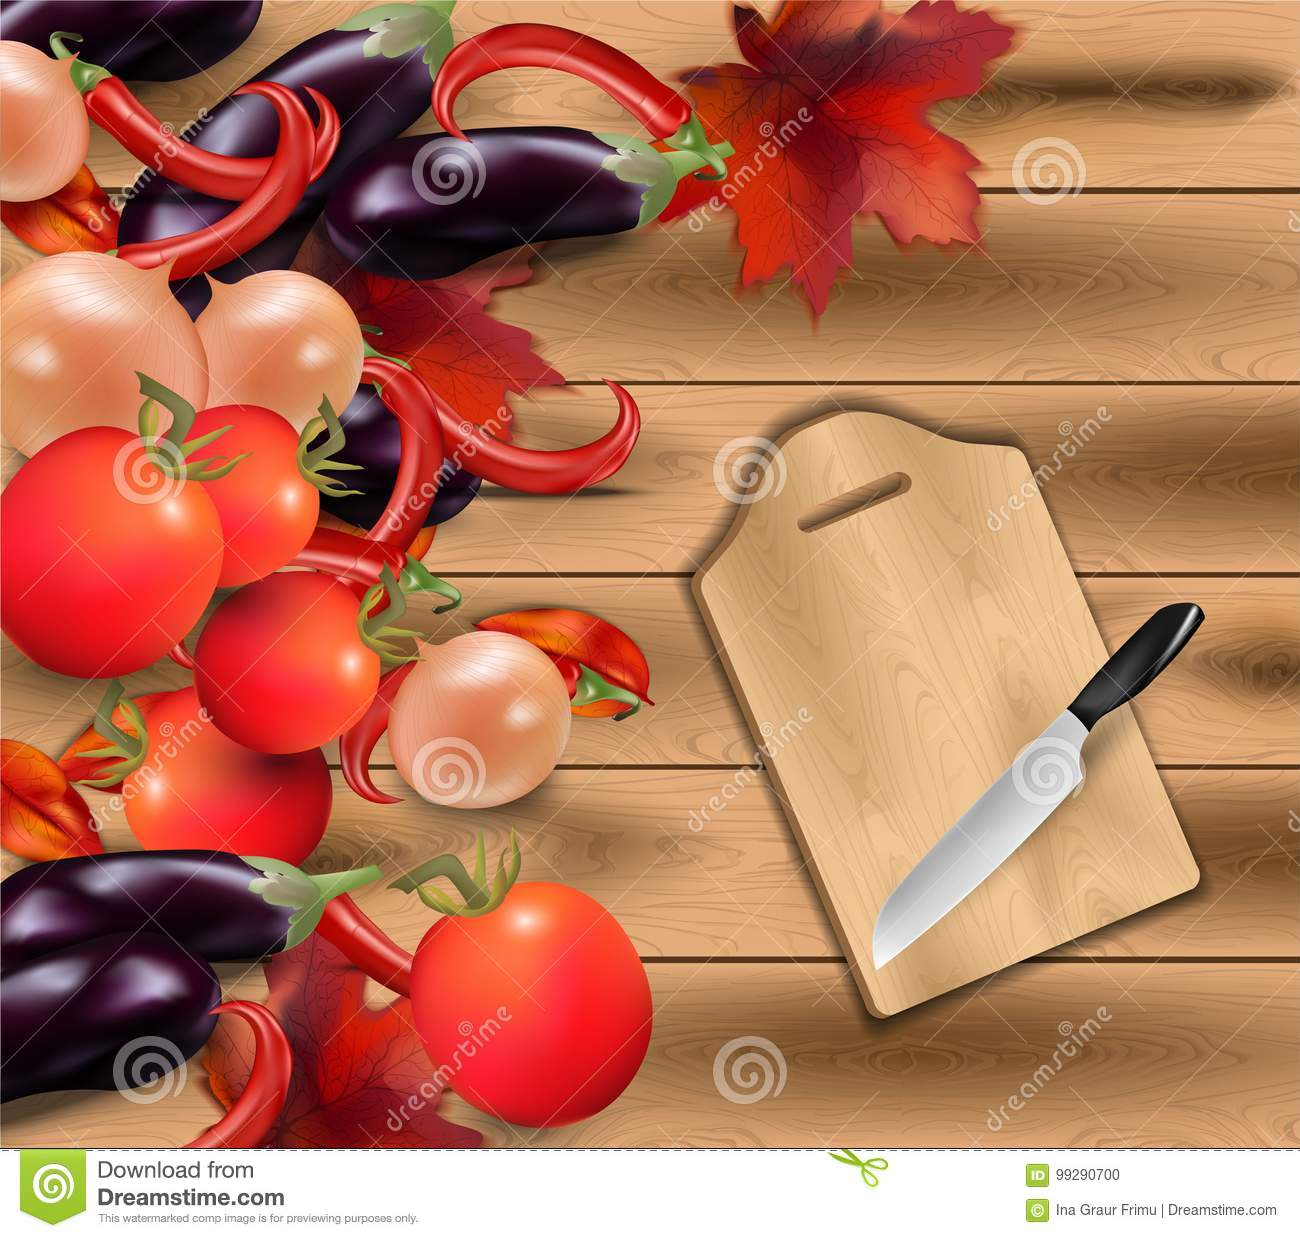 vegetables on wood background realistic kitchen knife vector